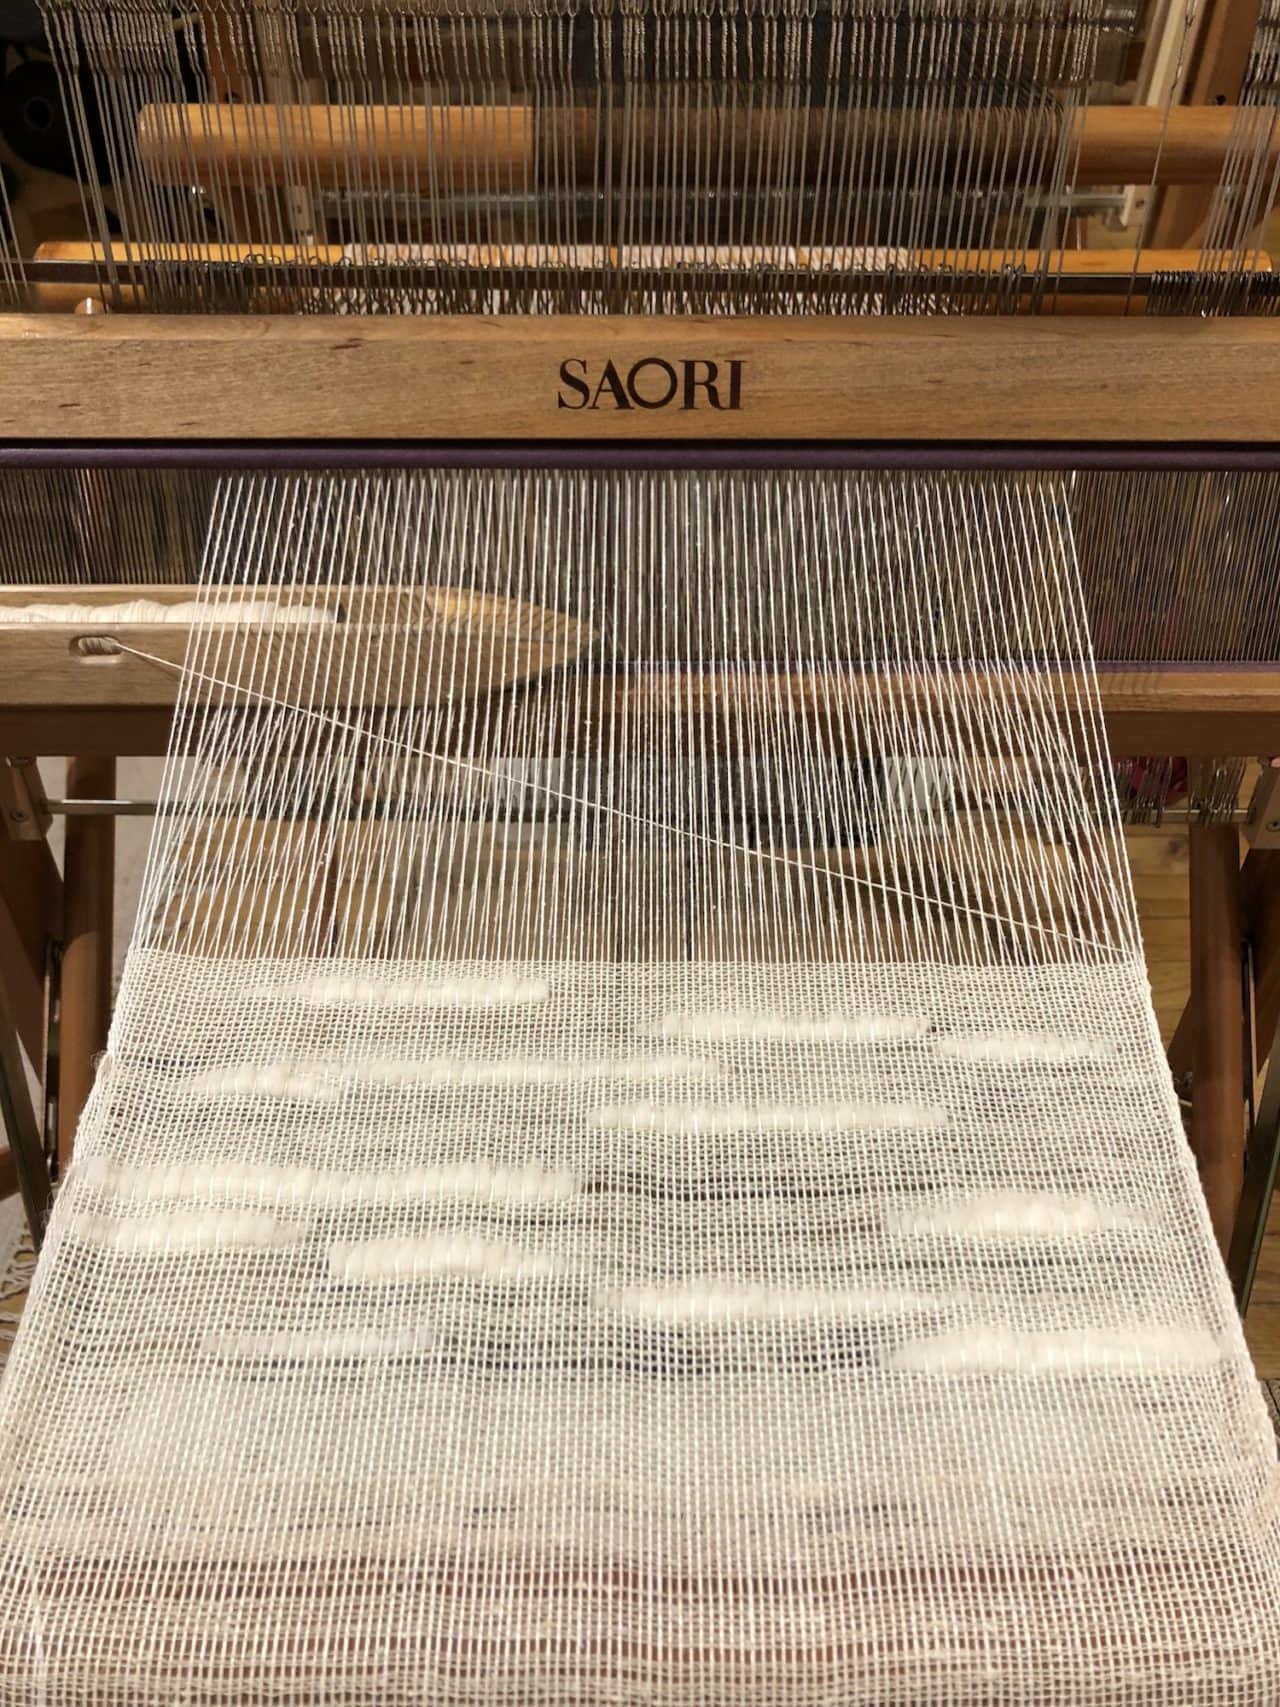 Saori weaving by Tanu Vasu (Photo: Courtesy of Tanu Vasu)